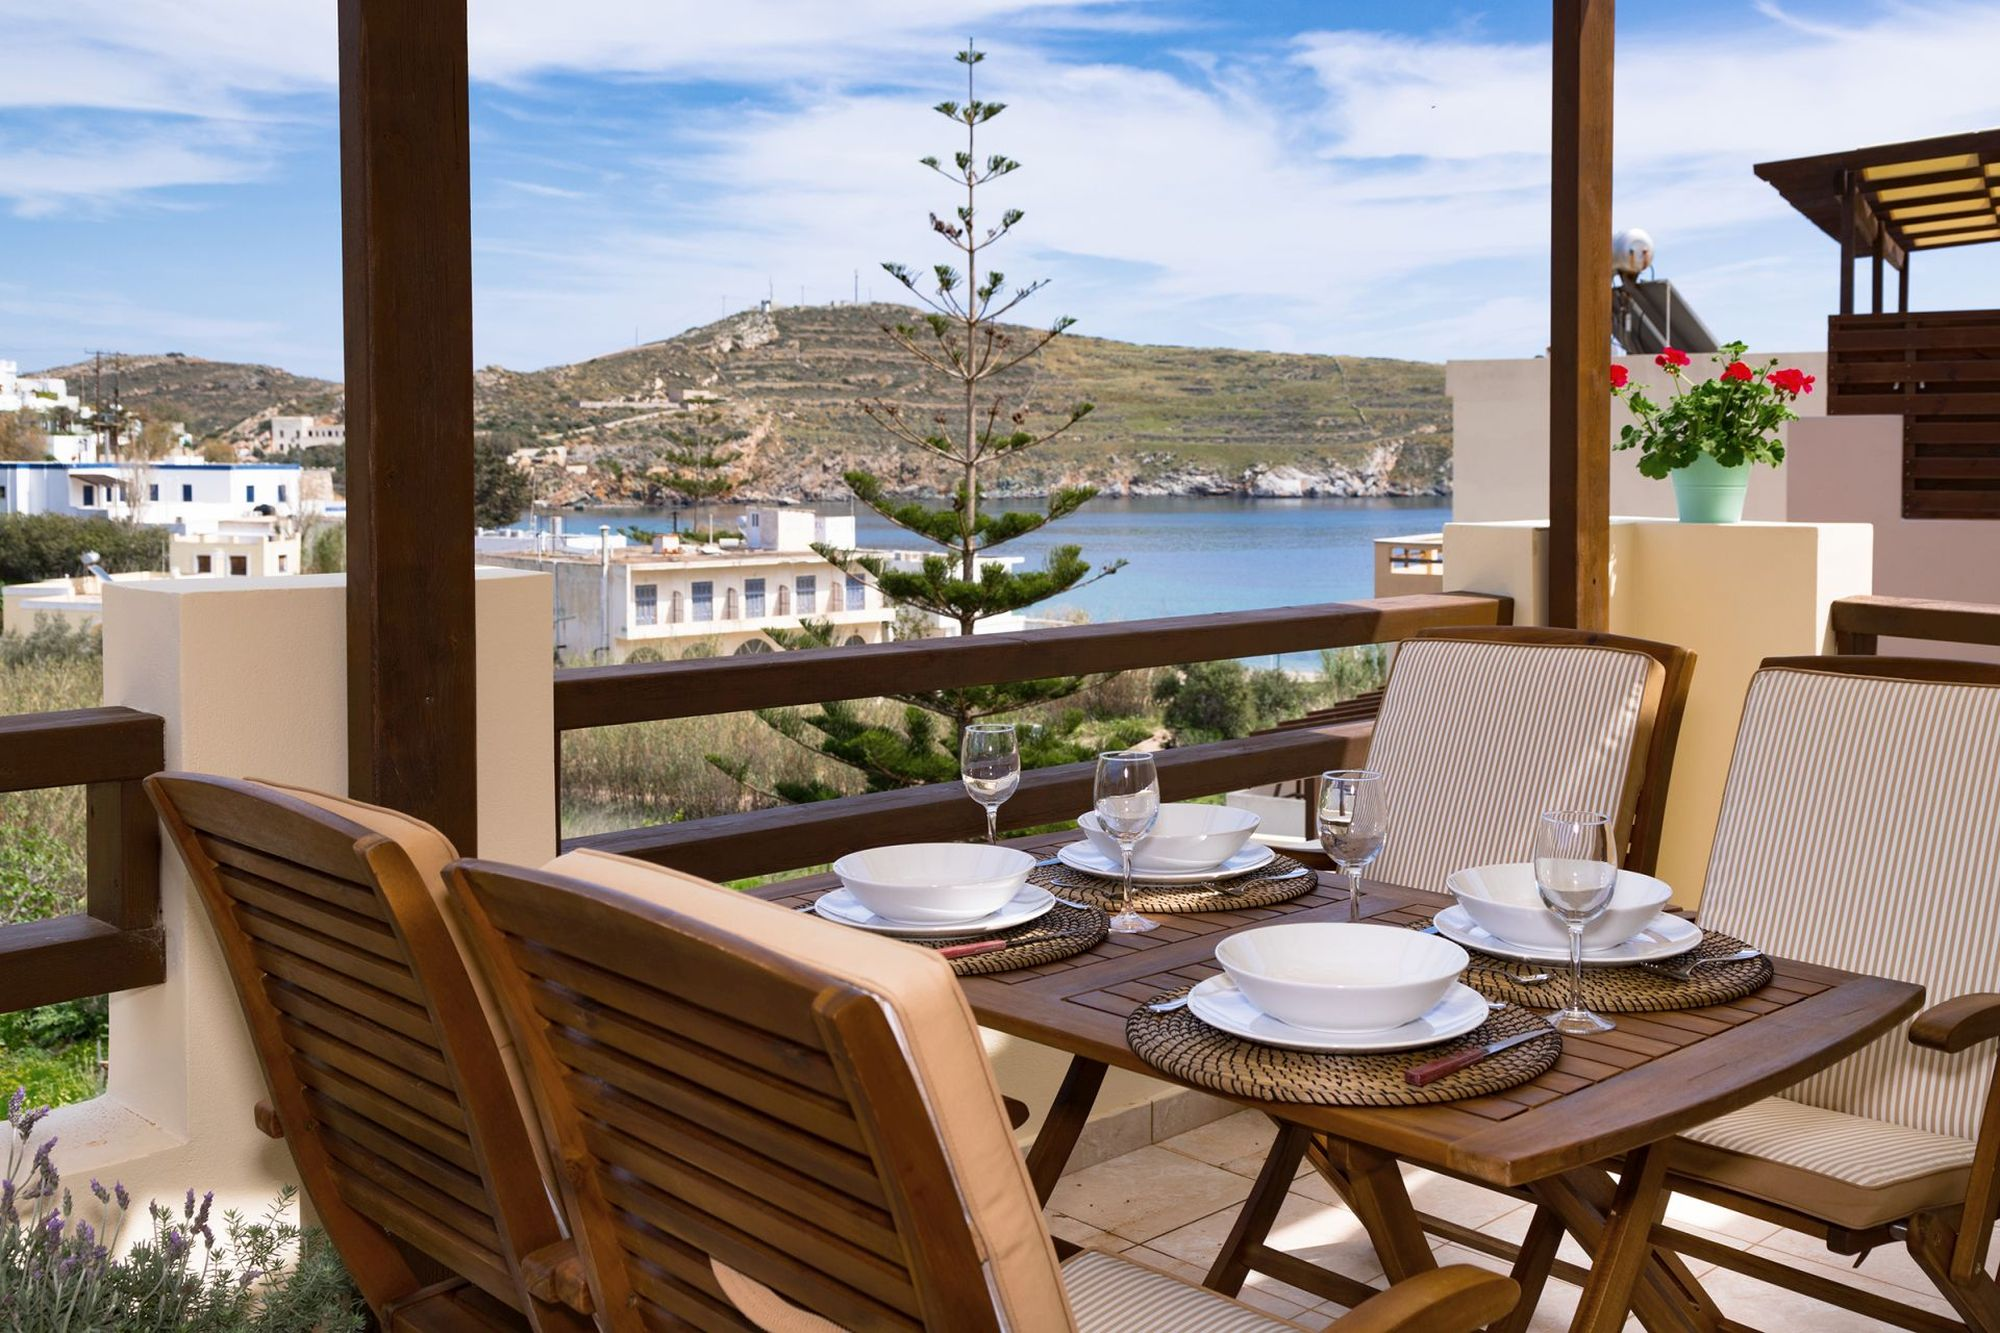 Sea view veranda with a dining table for four persons with white dinnerware on it.